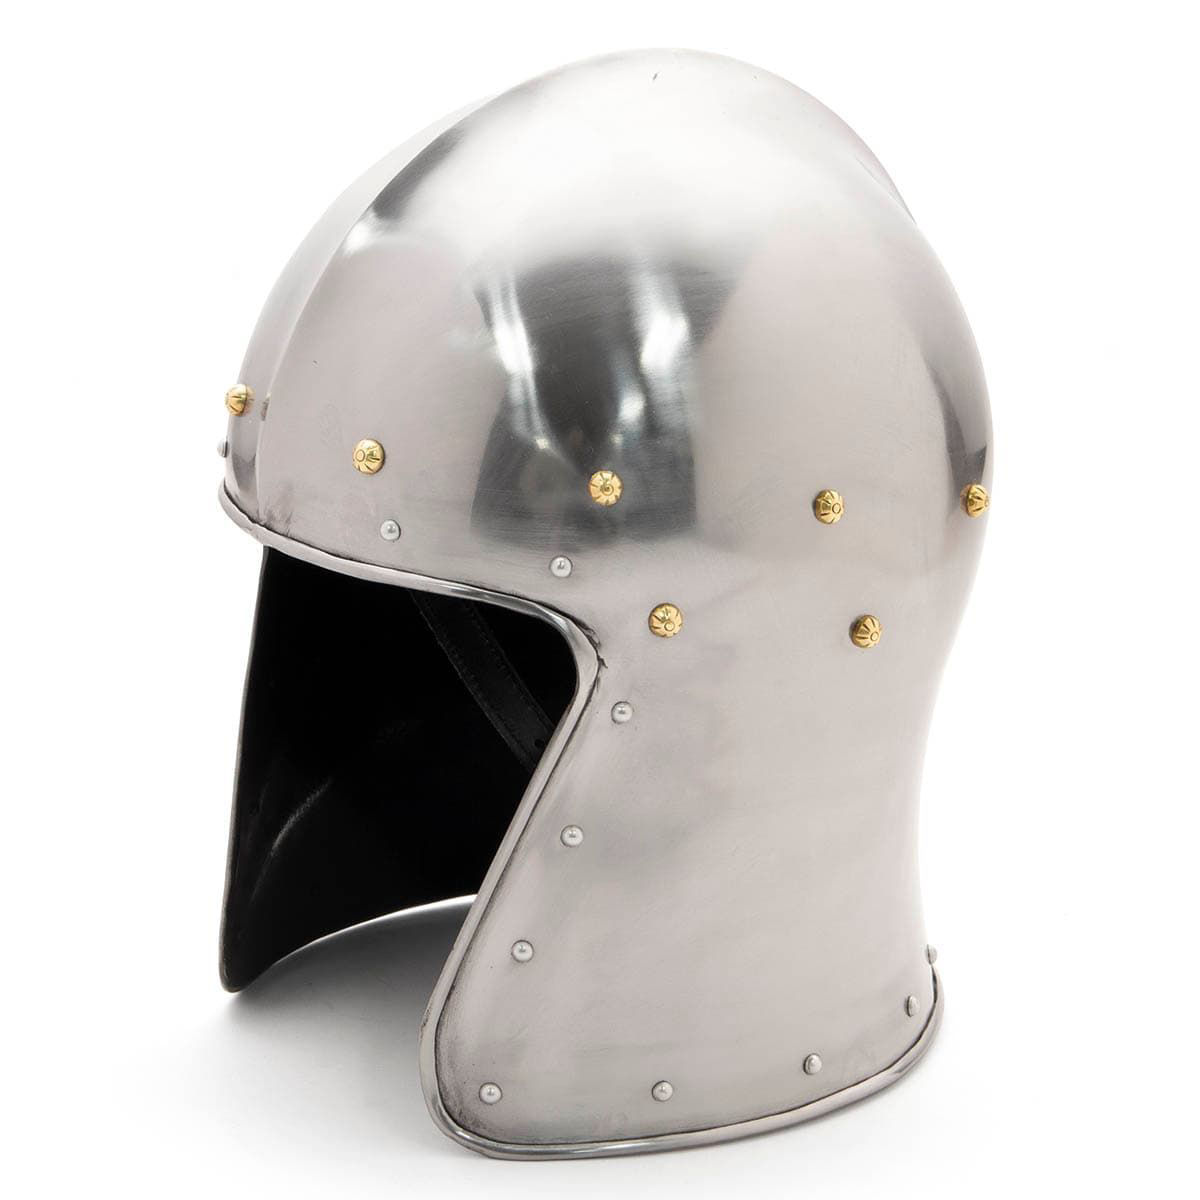 Barbute tall visorless 18 gauge steel medieval helmet by Noble Armoury with decorative brass and steel rivets